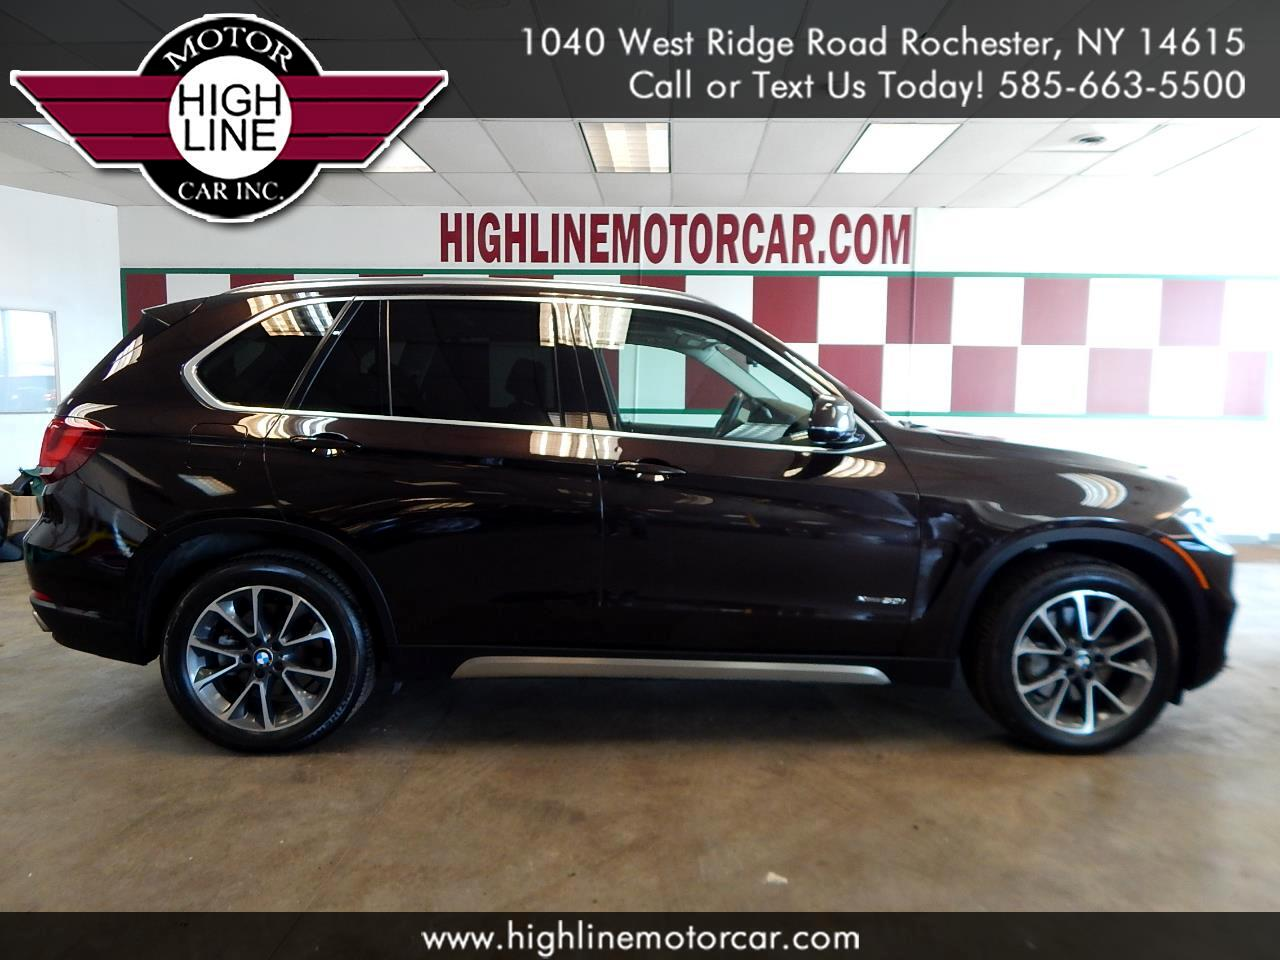 2014 BMW X5 AWD 4dr xDrive50i